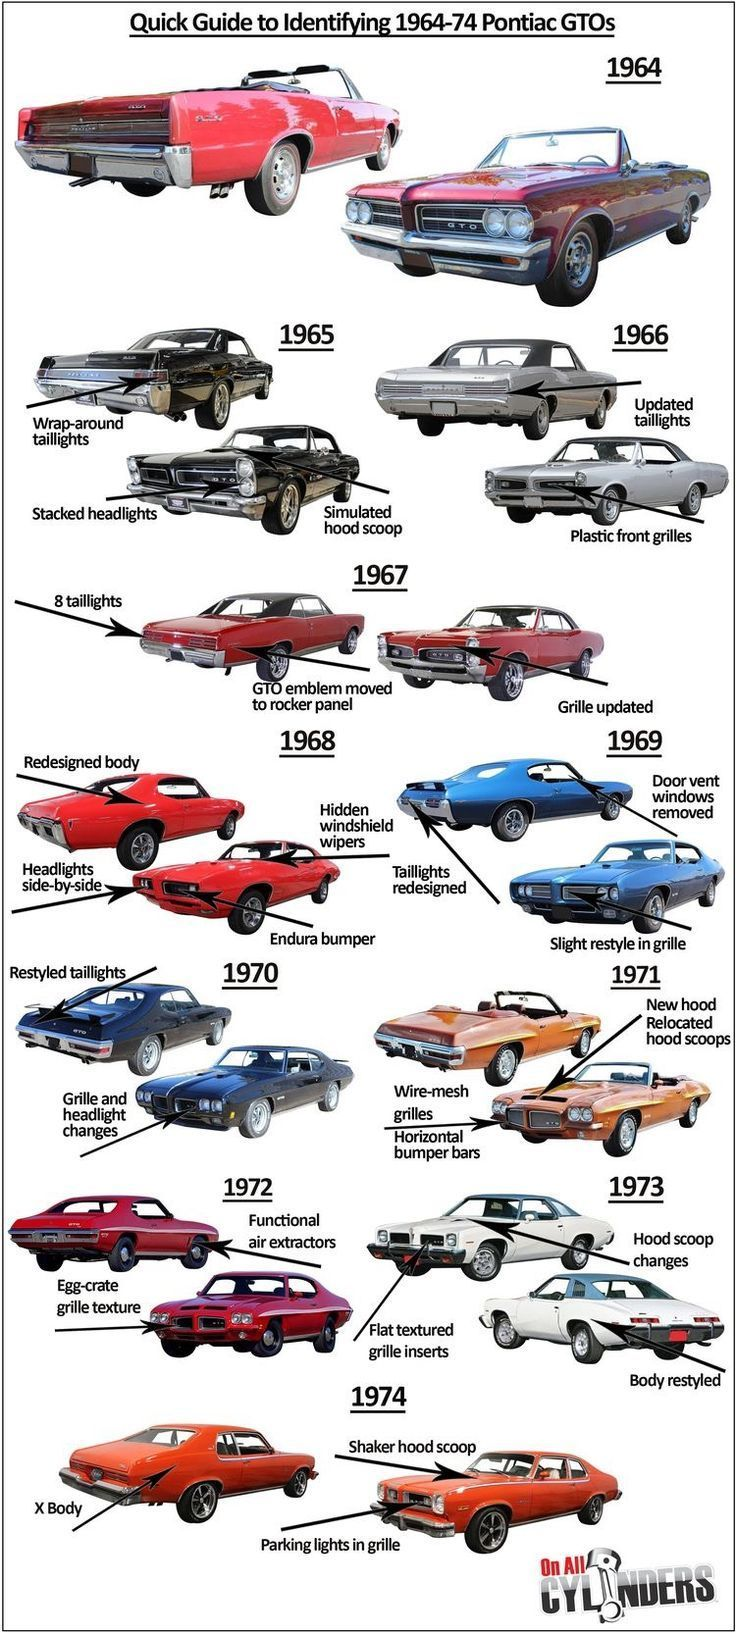 1967 Pontiac GTO & Pontiac GTO Guide to Identifying Chart Check Out My Archives for High Definition Cars,Hotrods,Ratrods,Kustoms,Trucks,Motorcycles,Abandoned Vehicles,Trains,Animals,etc.♠